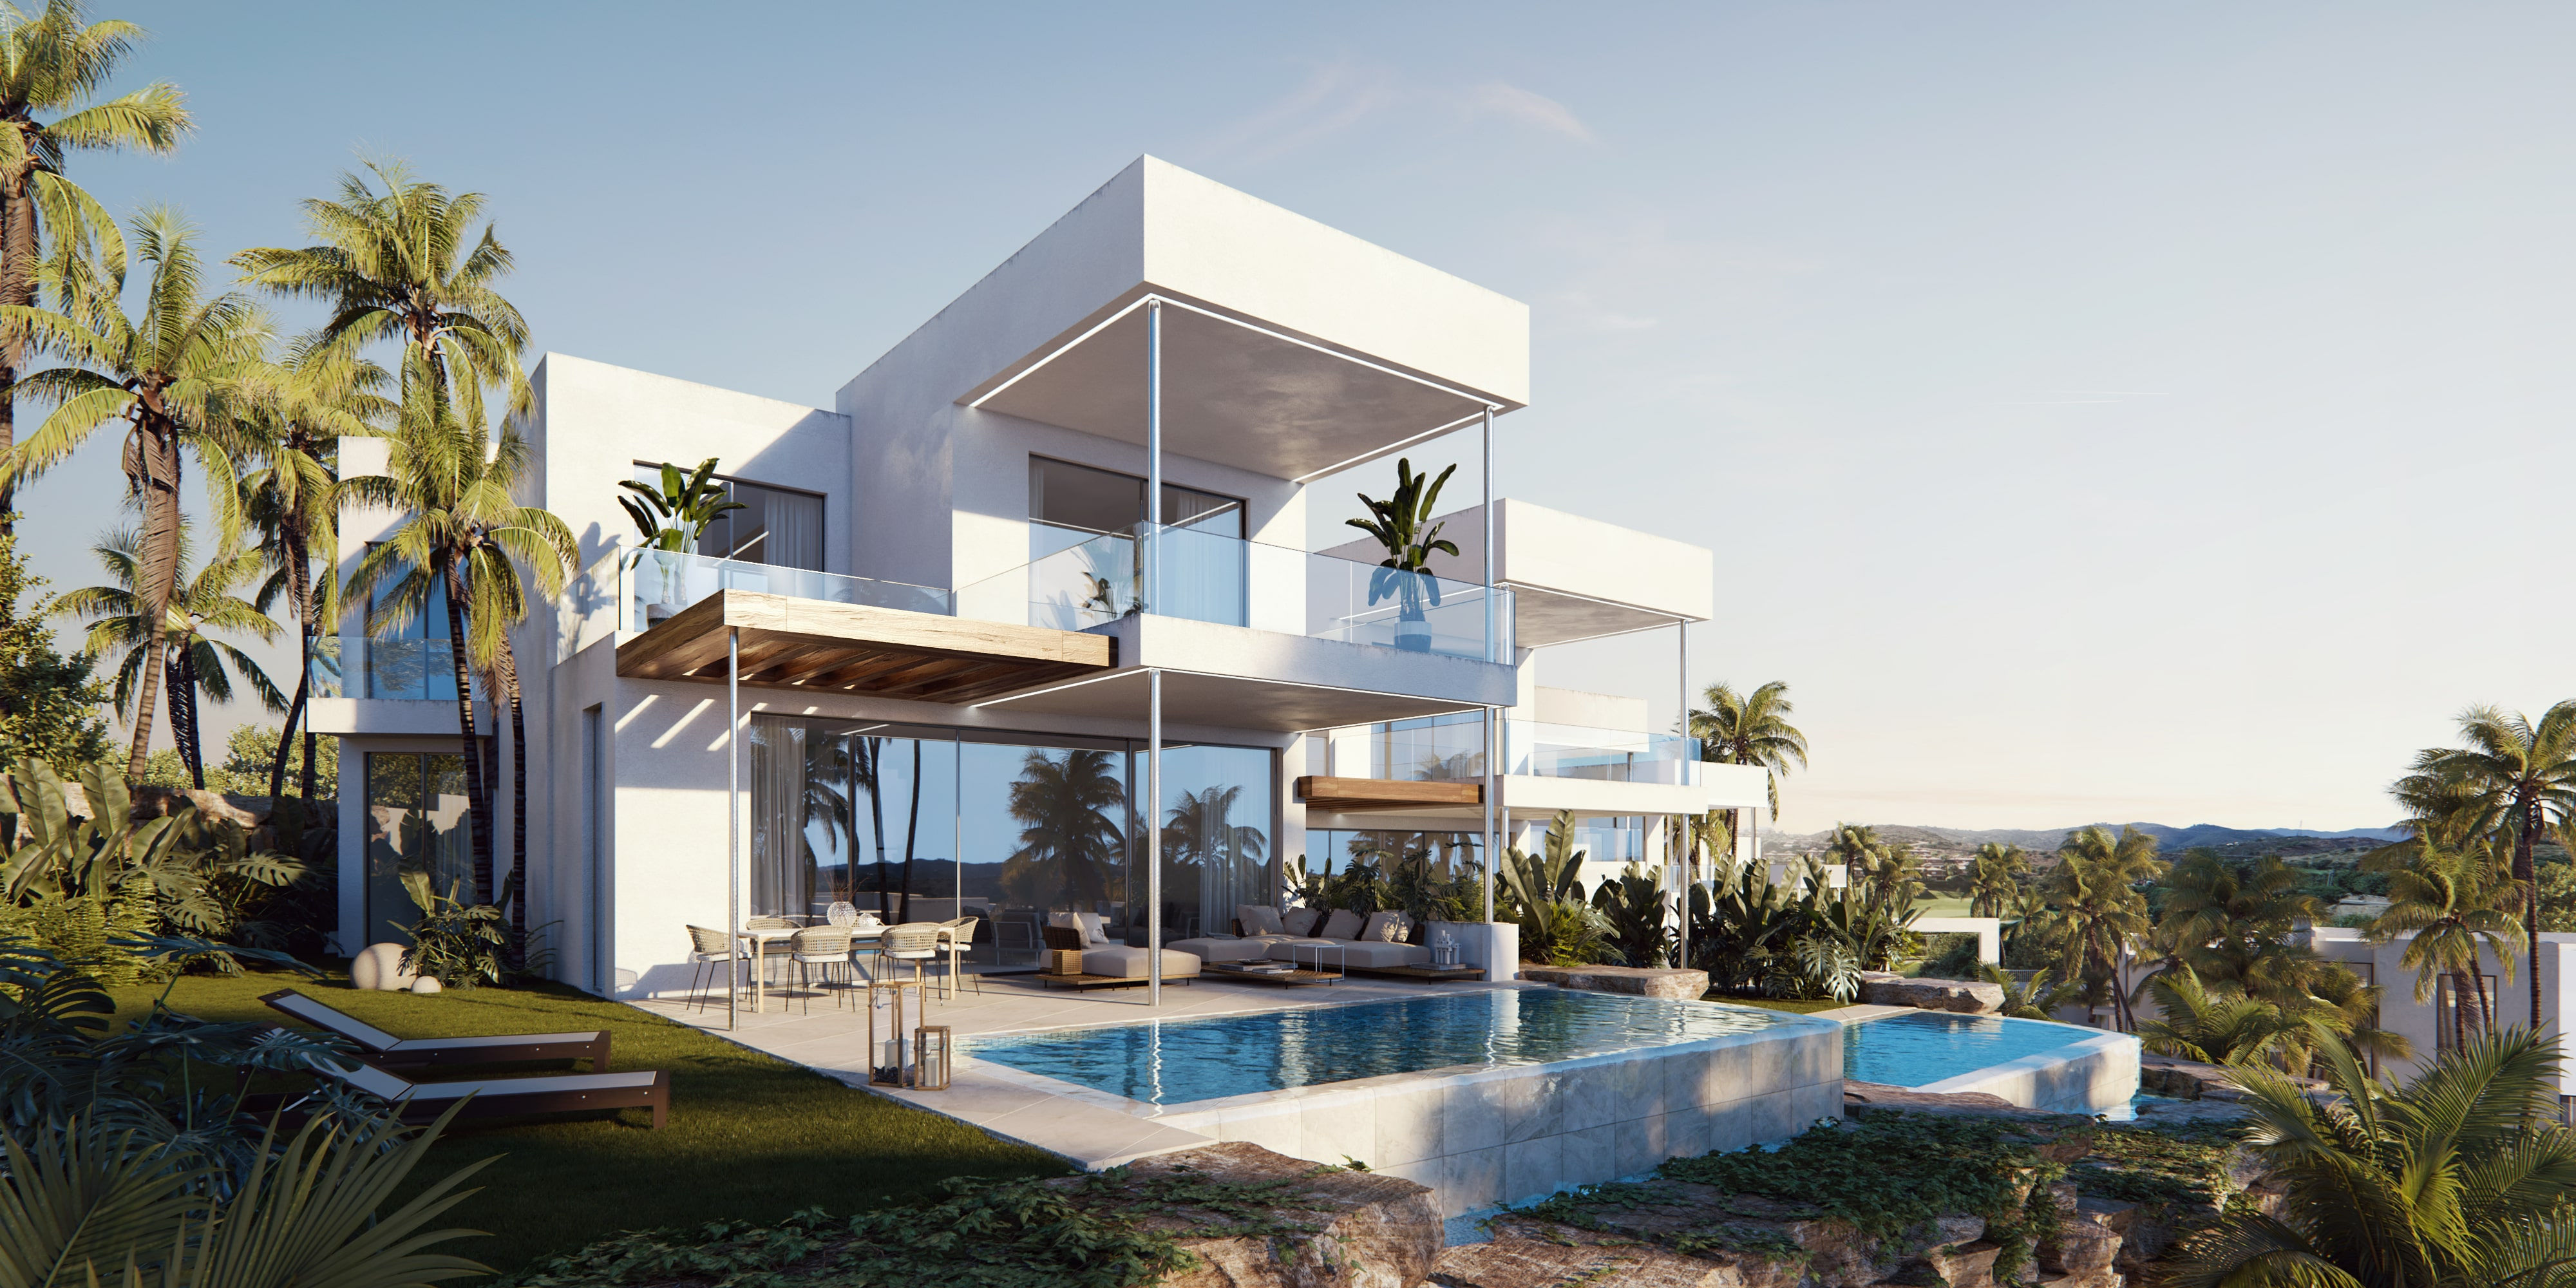 Realistic Rendering In Architecture – The Advantages Every Industry Expert Should Know